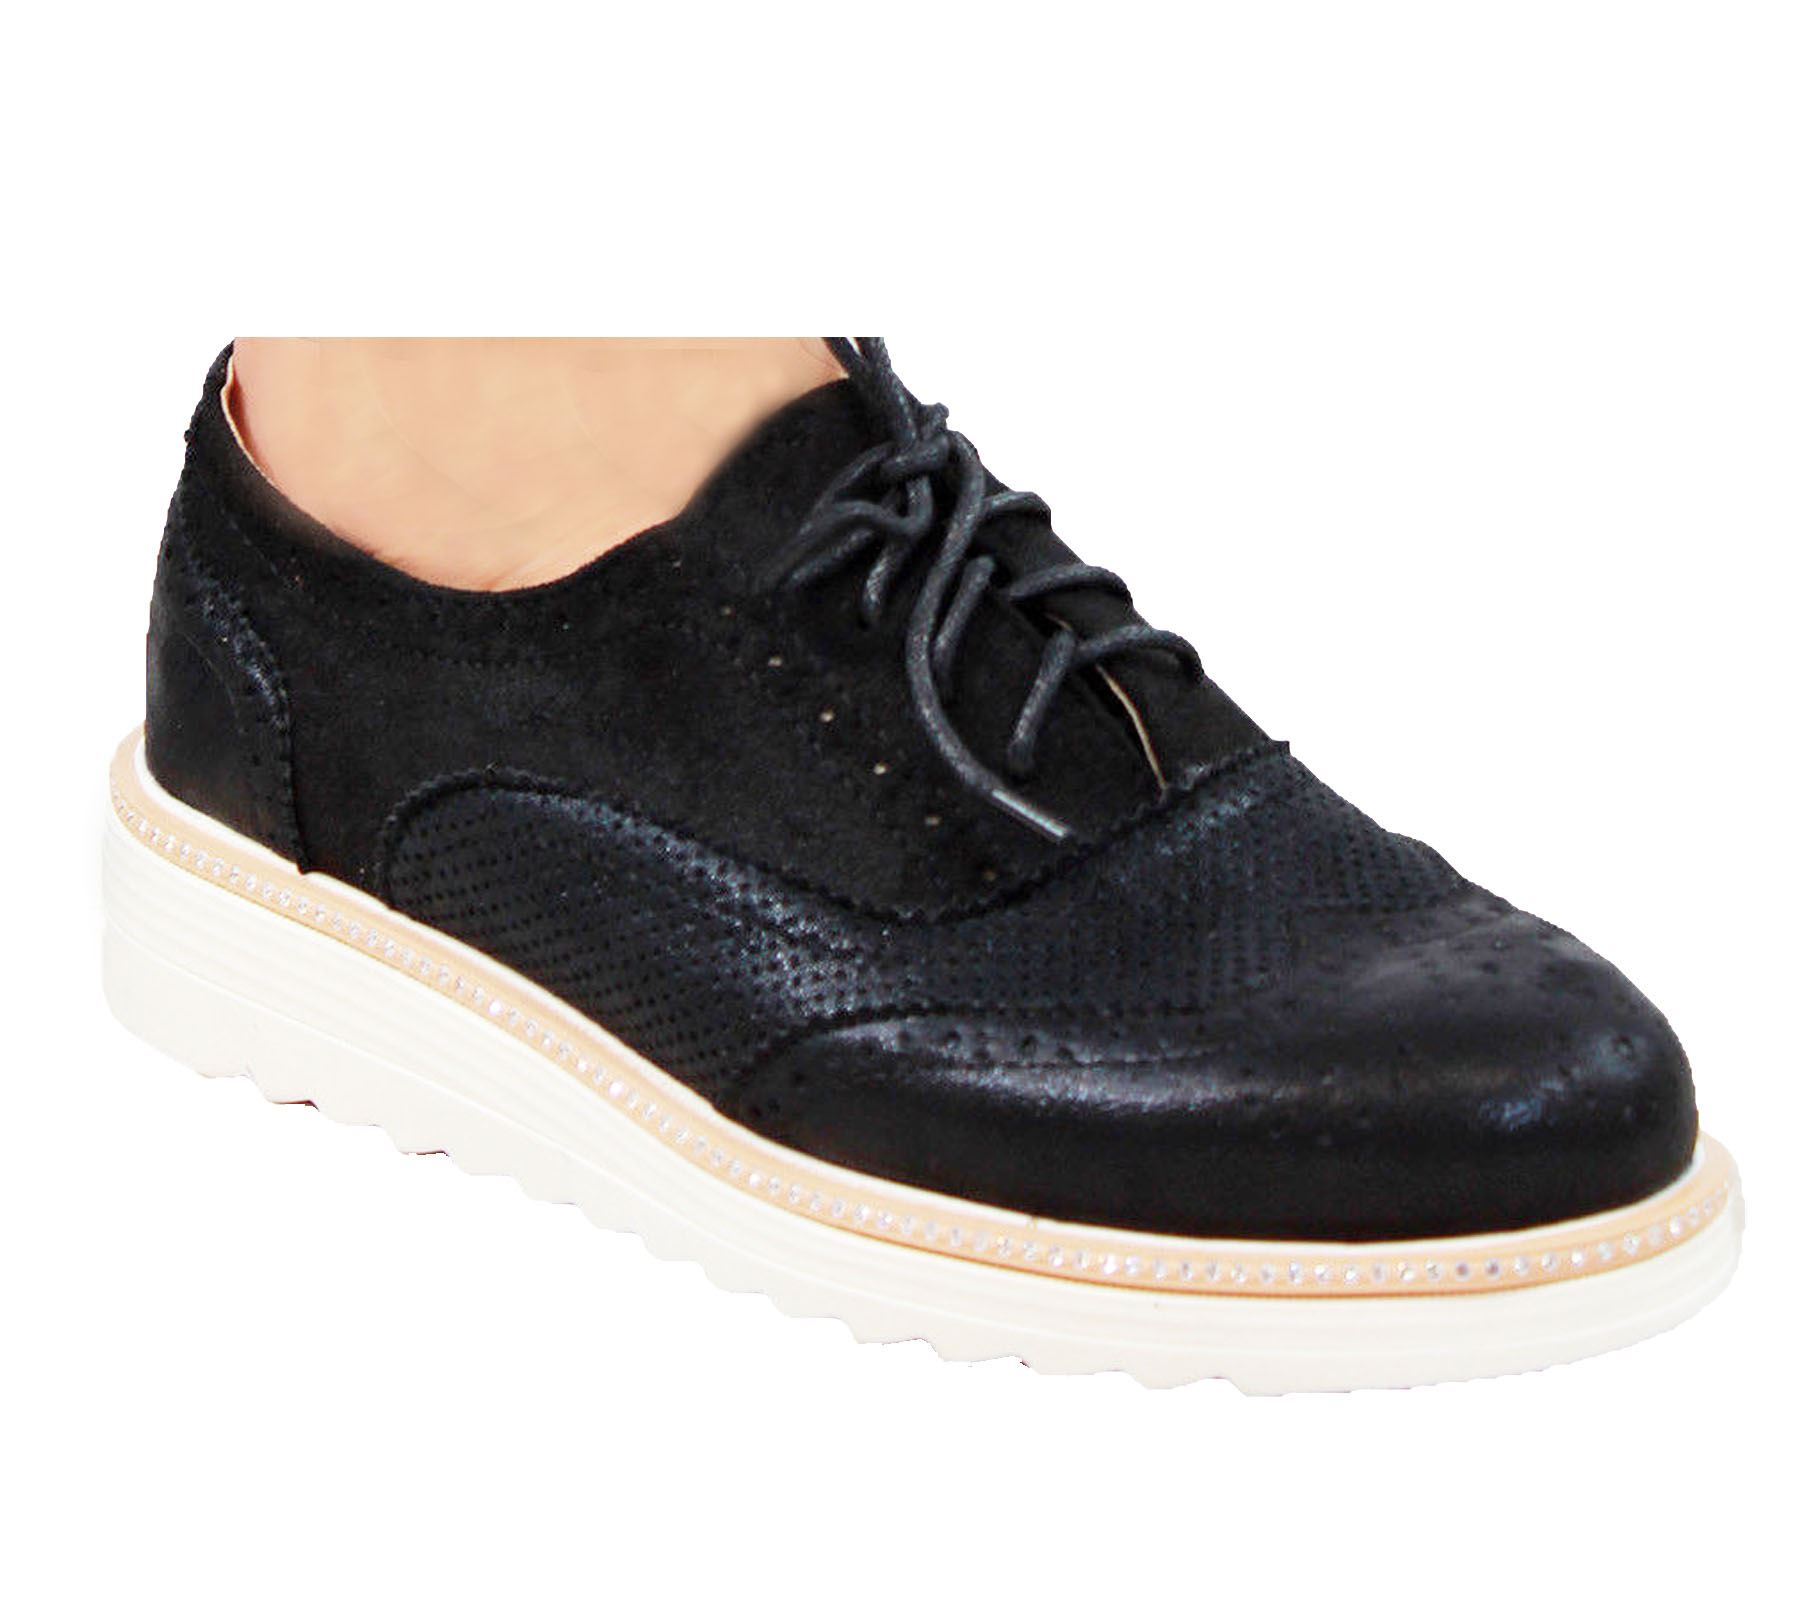 Ladies-Brogue-Lace-Up-Shoes-Womens-Oxford-Smart-Office-Loafers-Shoes miniatura 11